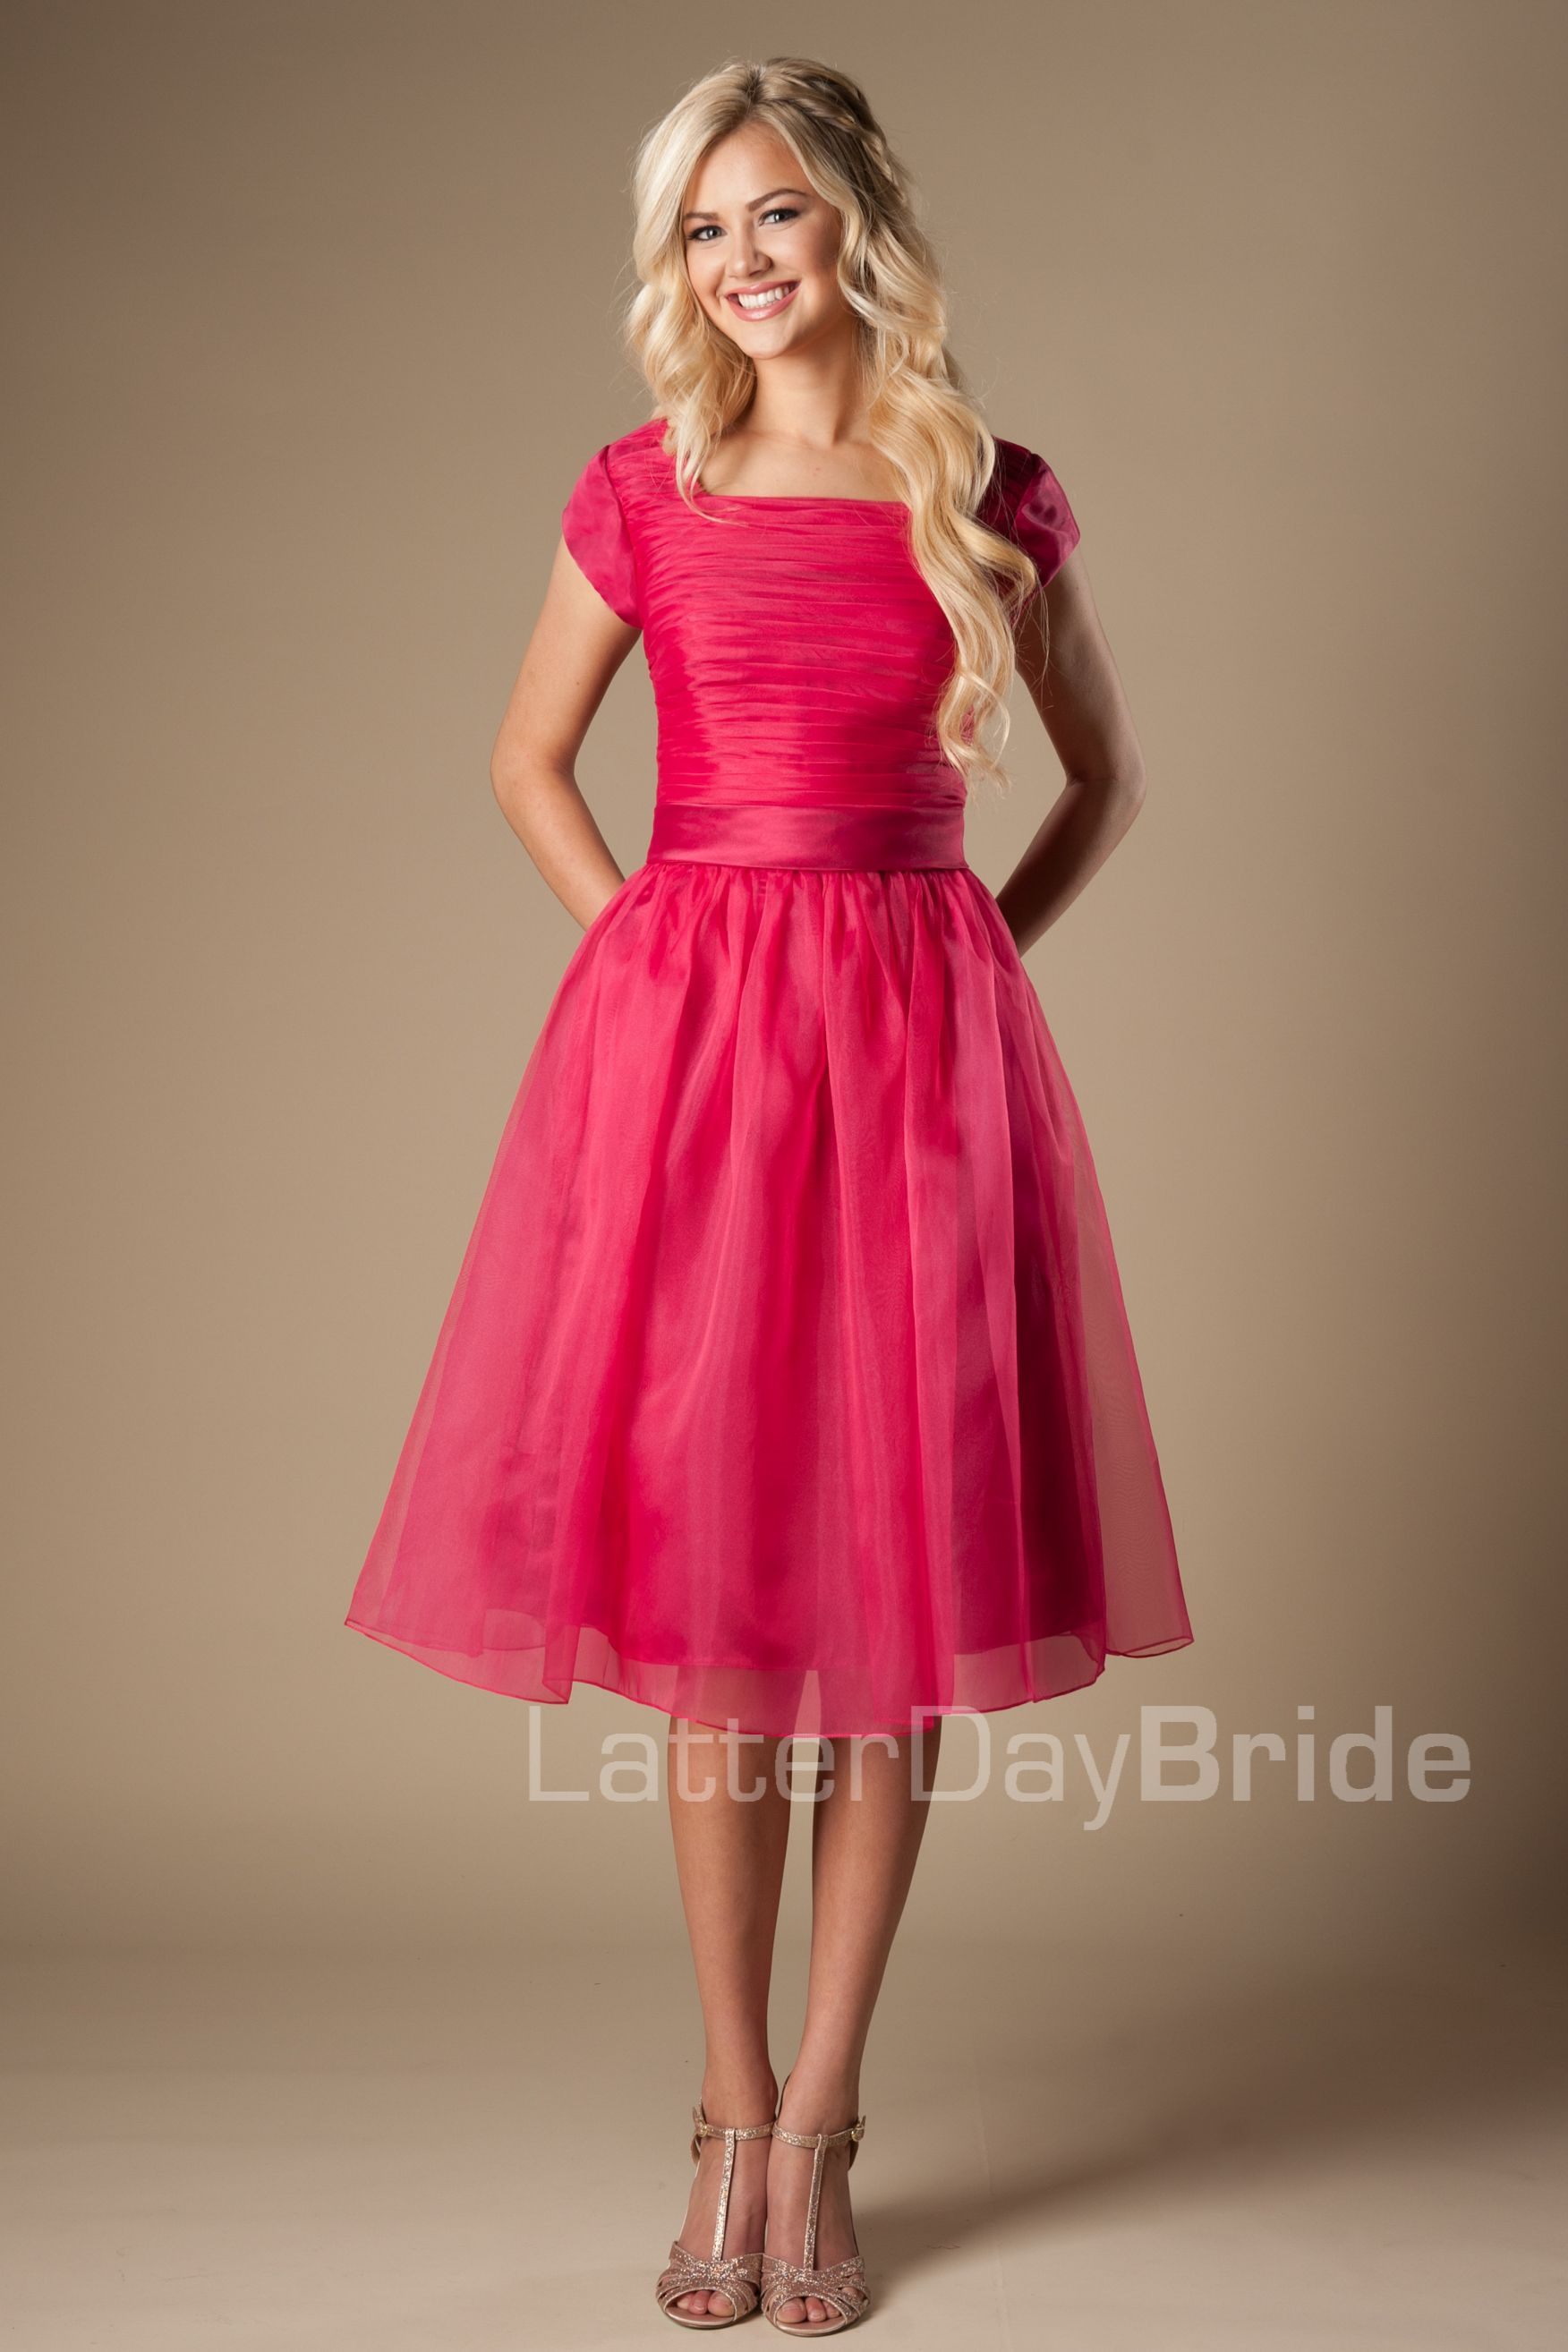 Latter Day Bride modest prom dress. pink, knee-length | Let\'s Play ...